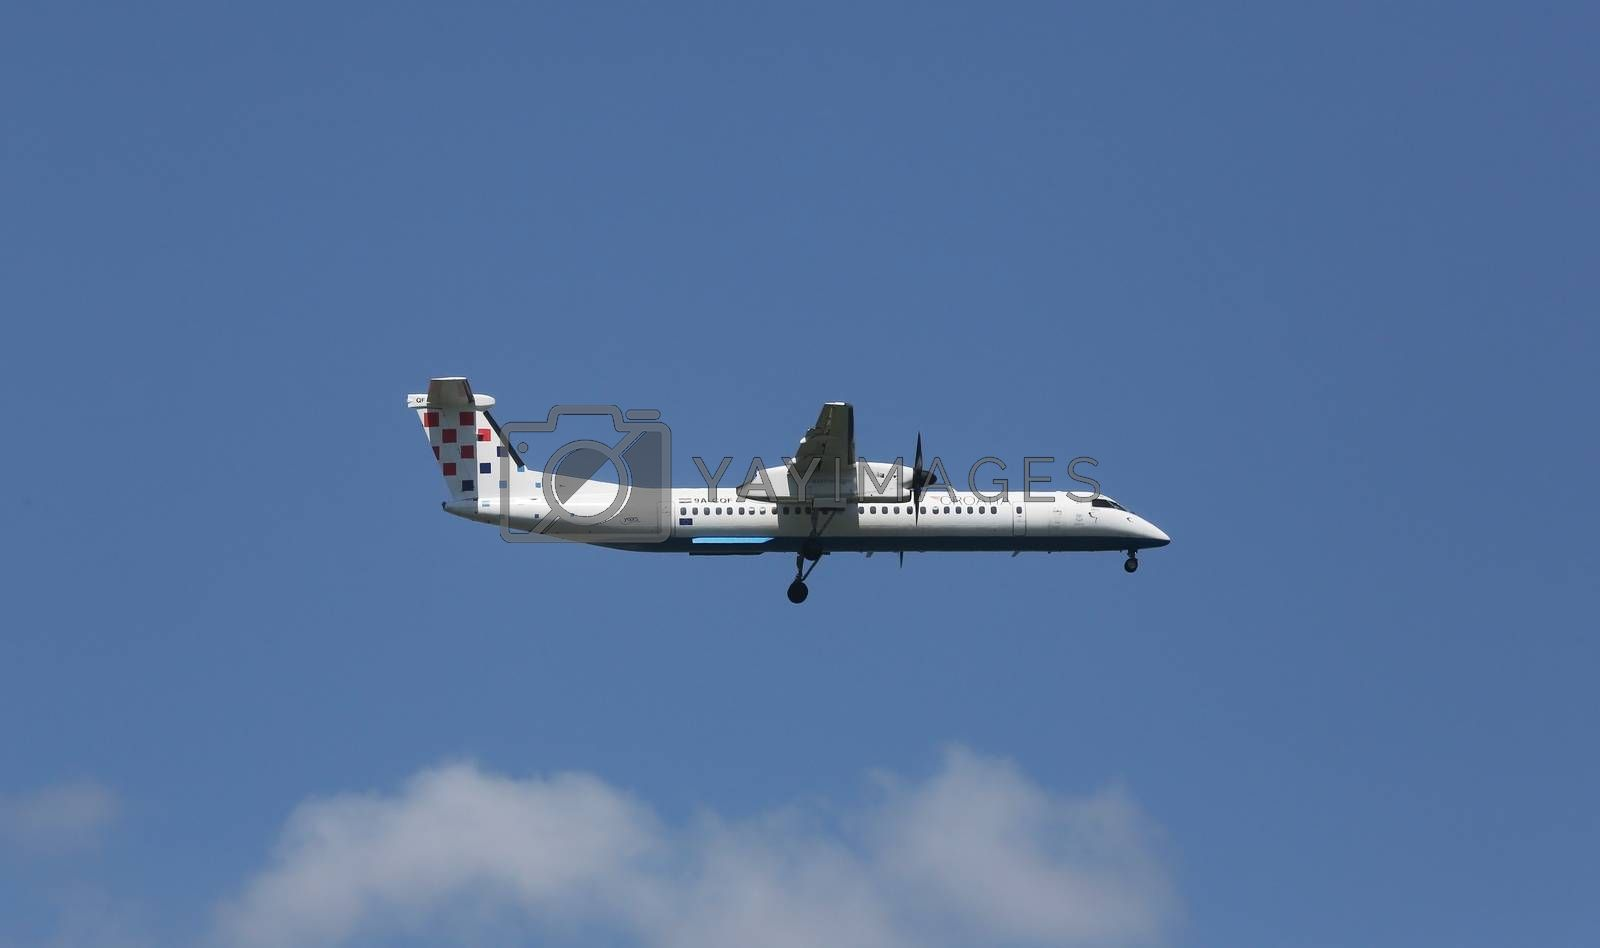 Bombardier DH8D, registration 9A-CQF of Croatia Airlines landing on Zagreb Airport Pleso